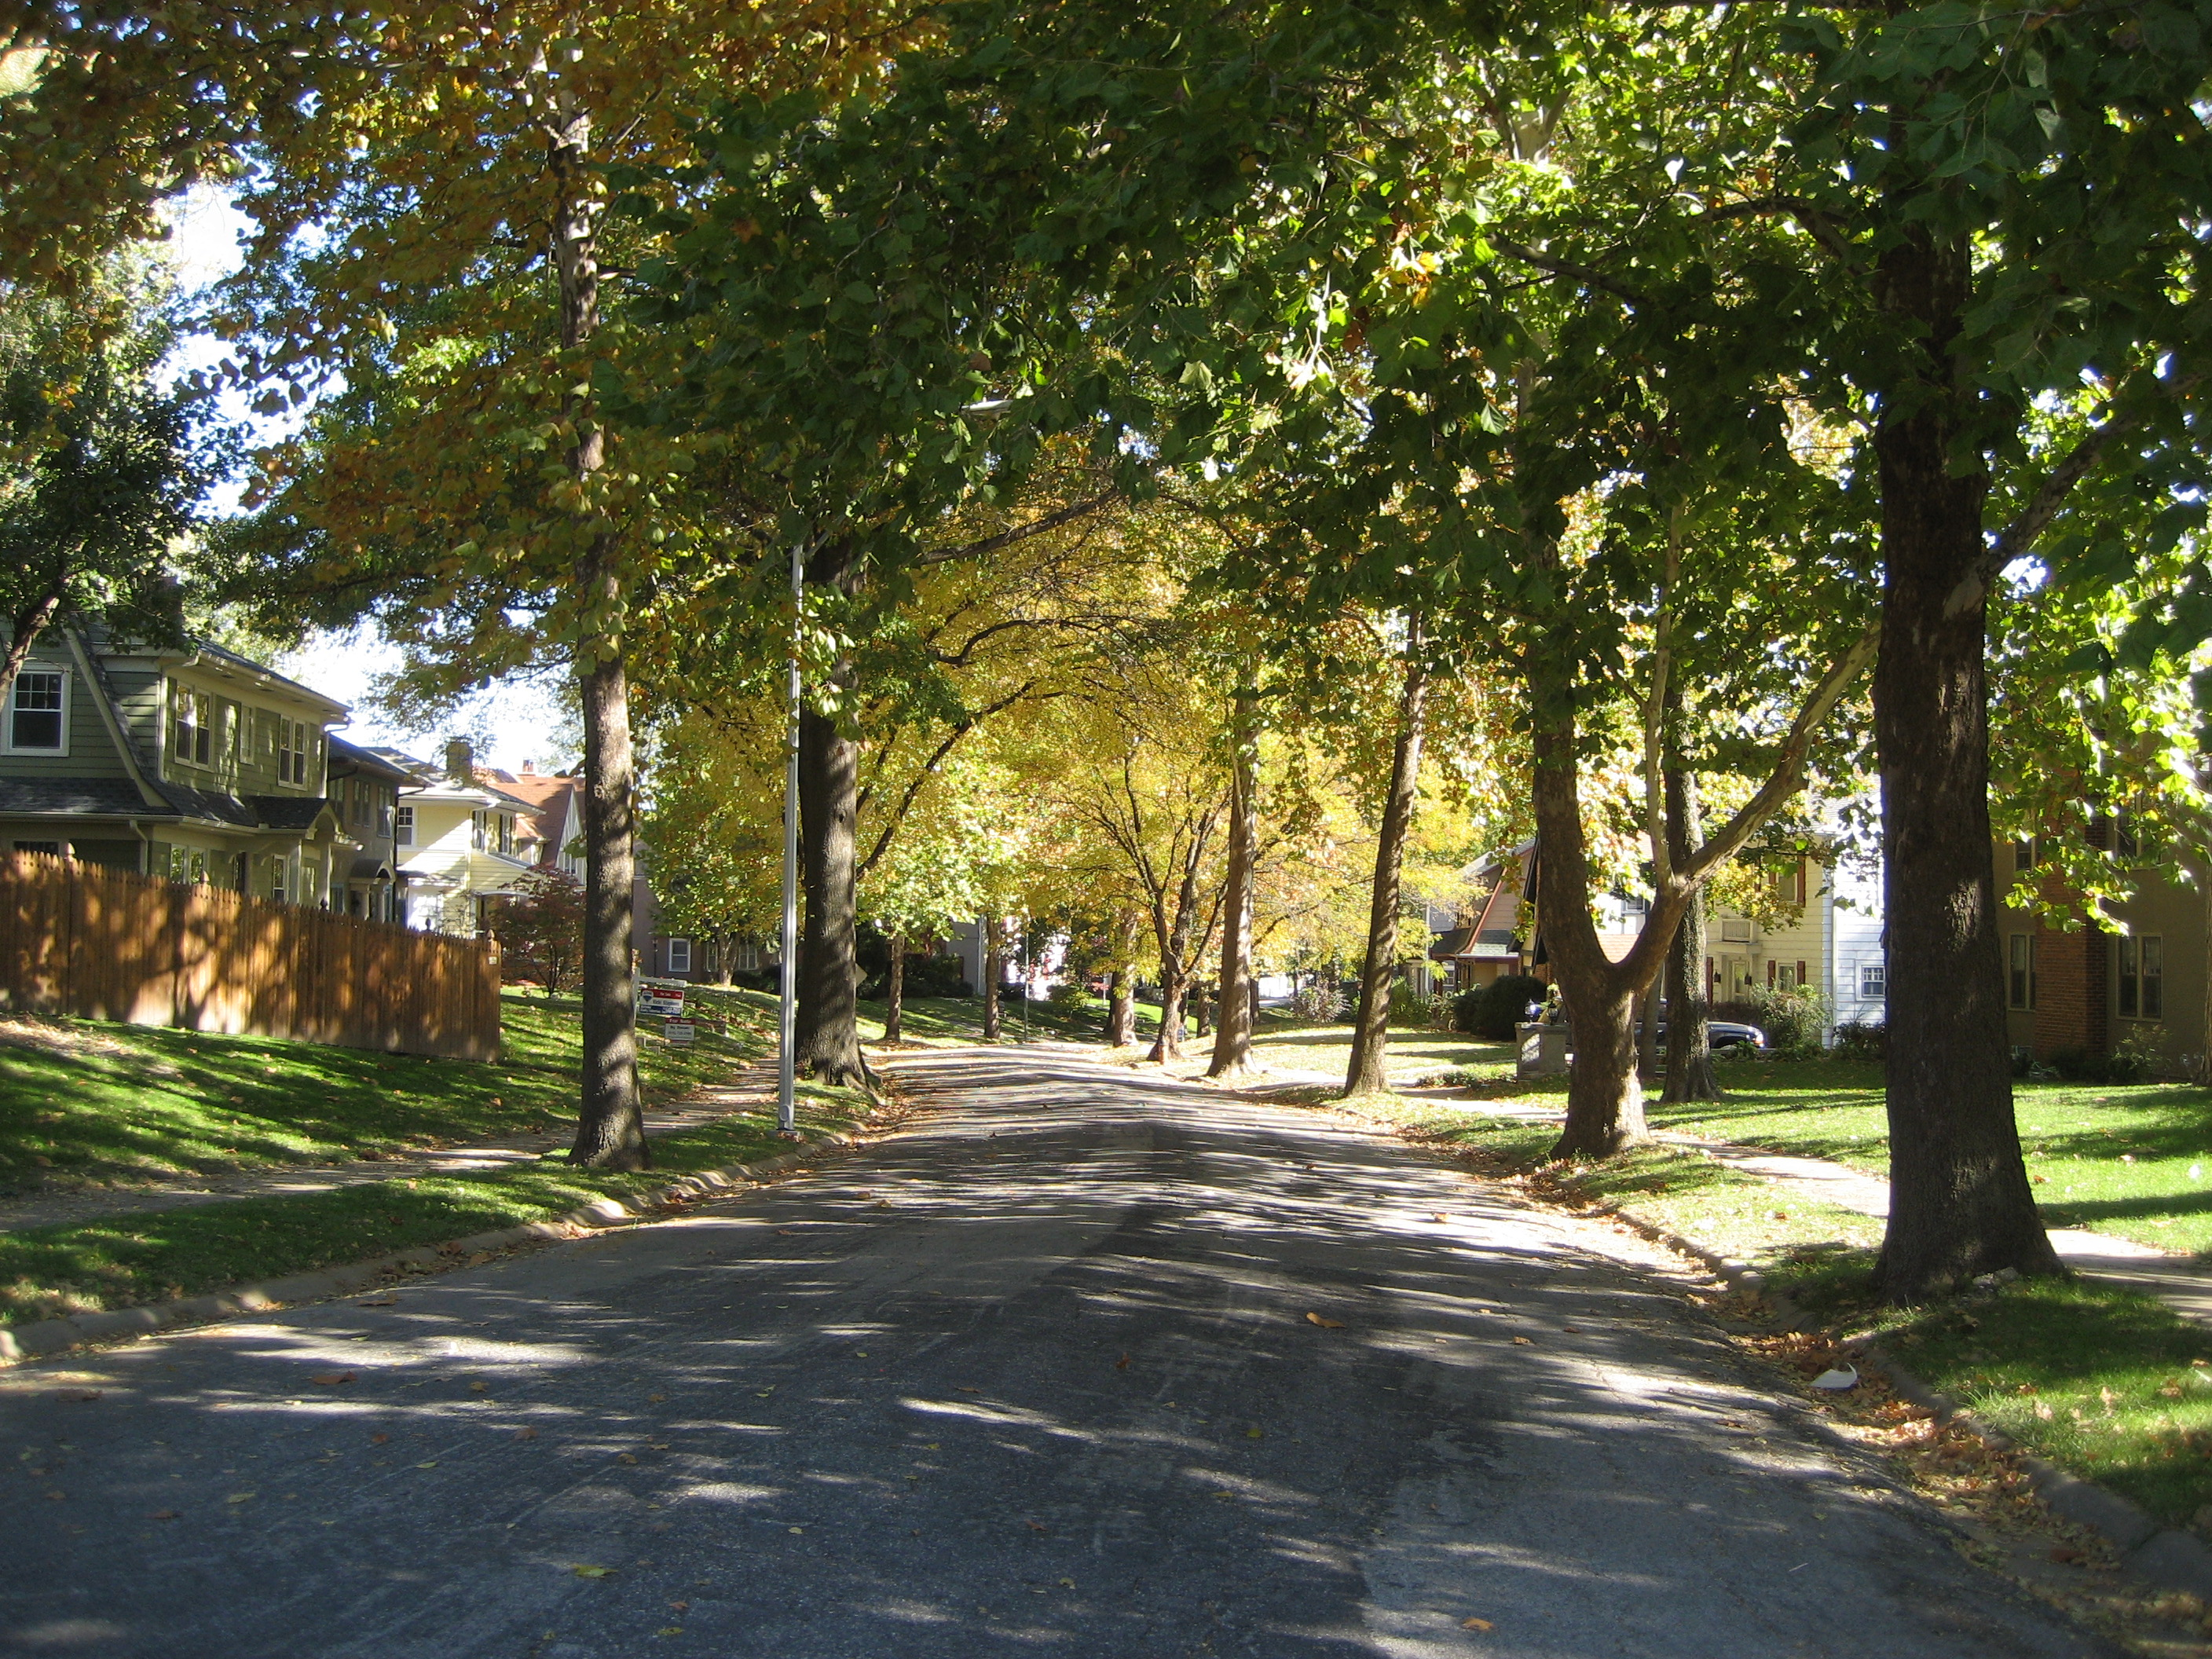 shaded neighborhood street